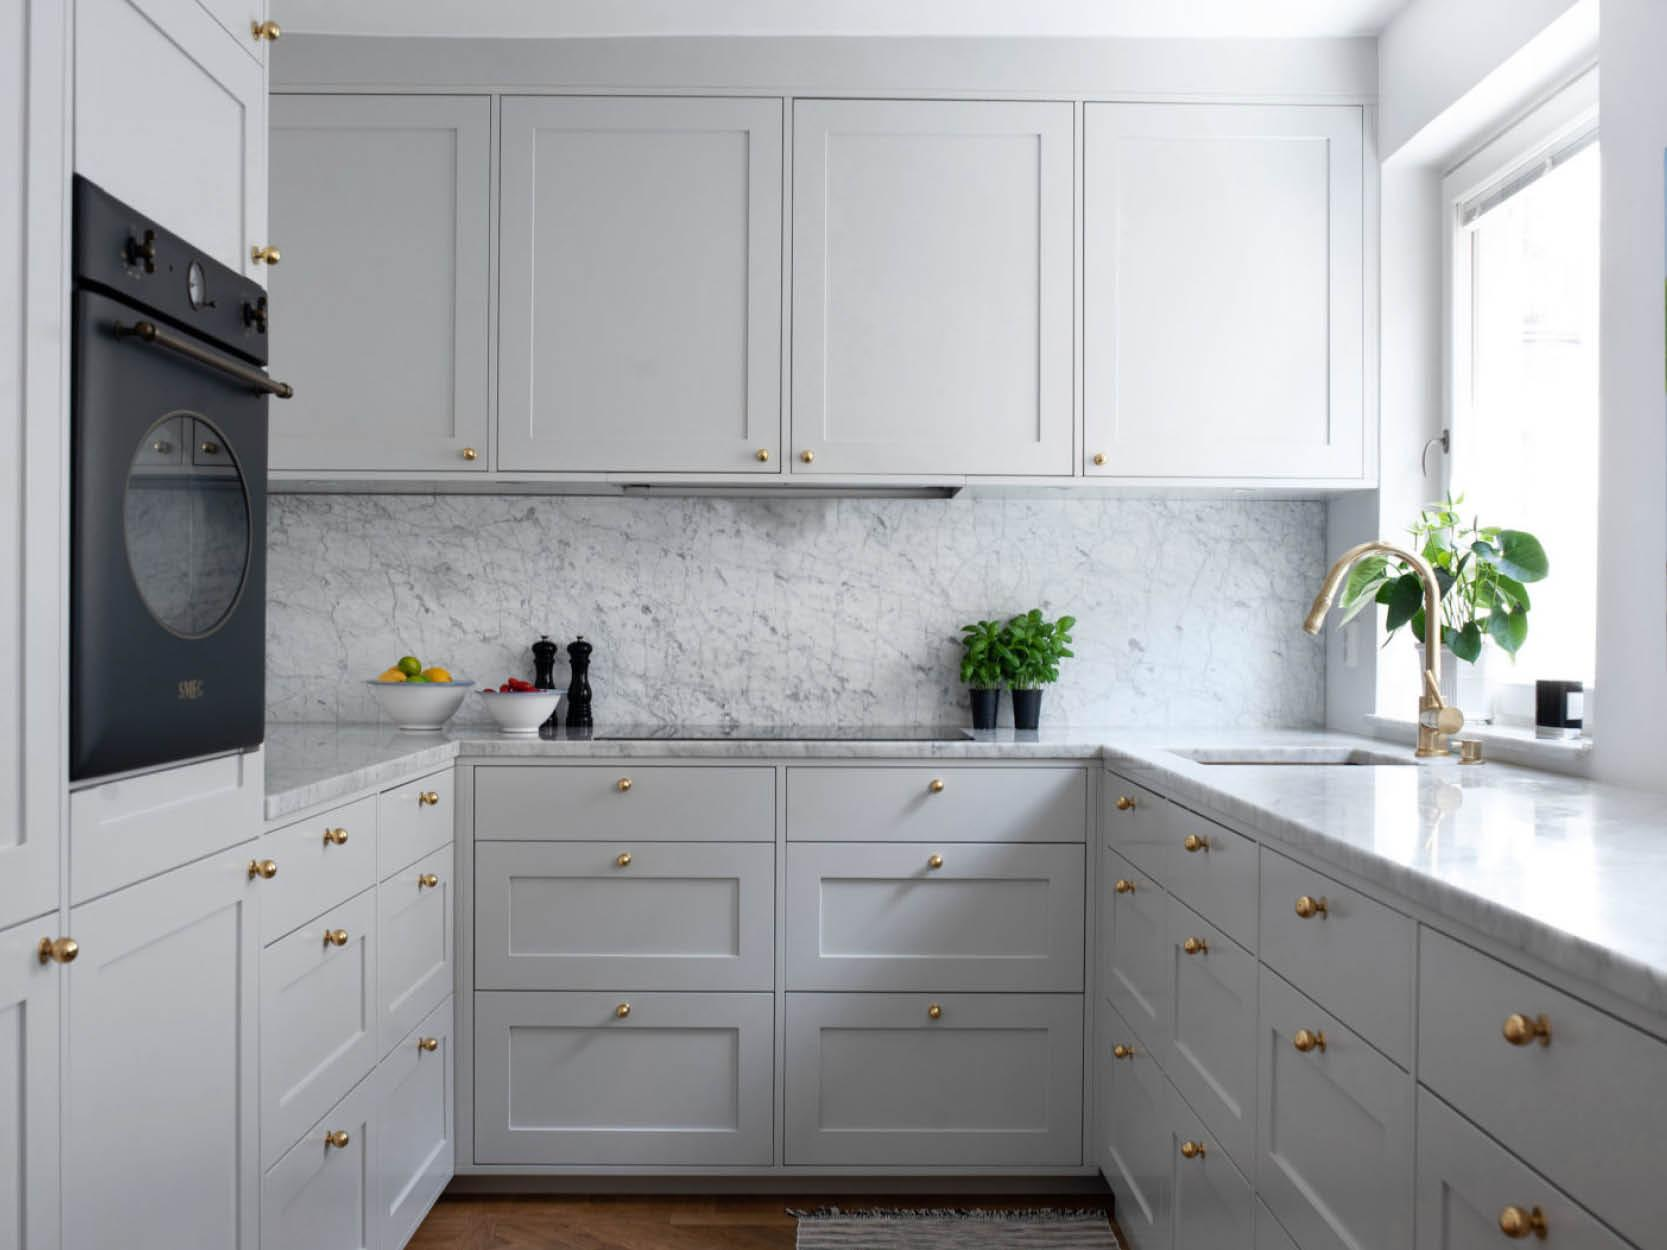 12 Ideas For Successful Small Kitchen Design Lansdowne Boards